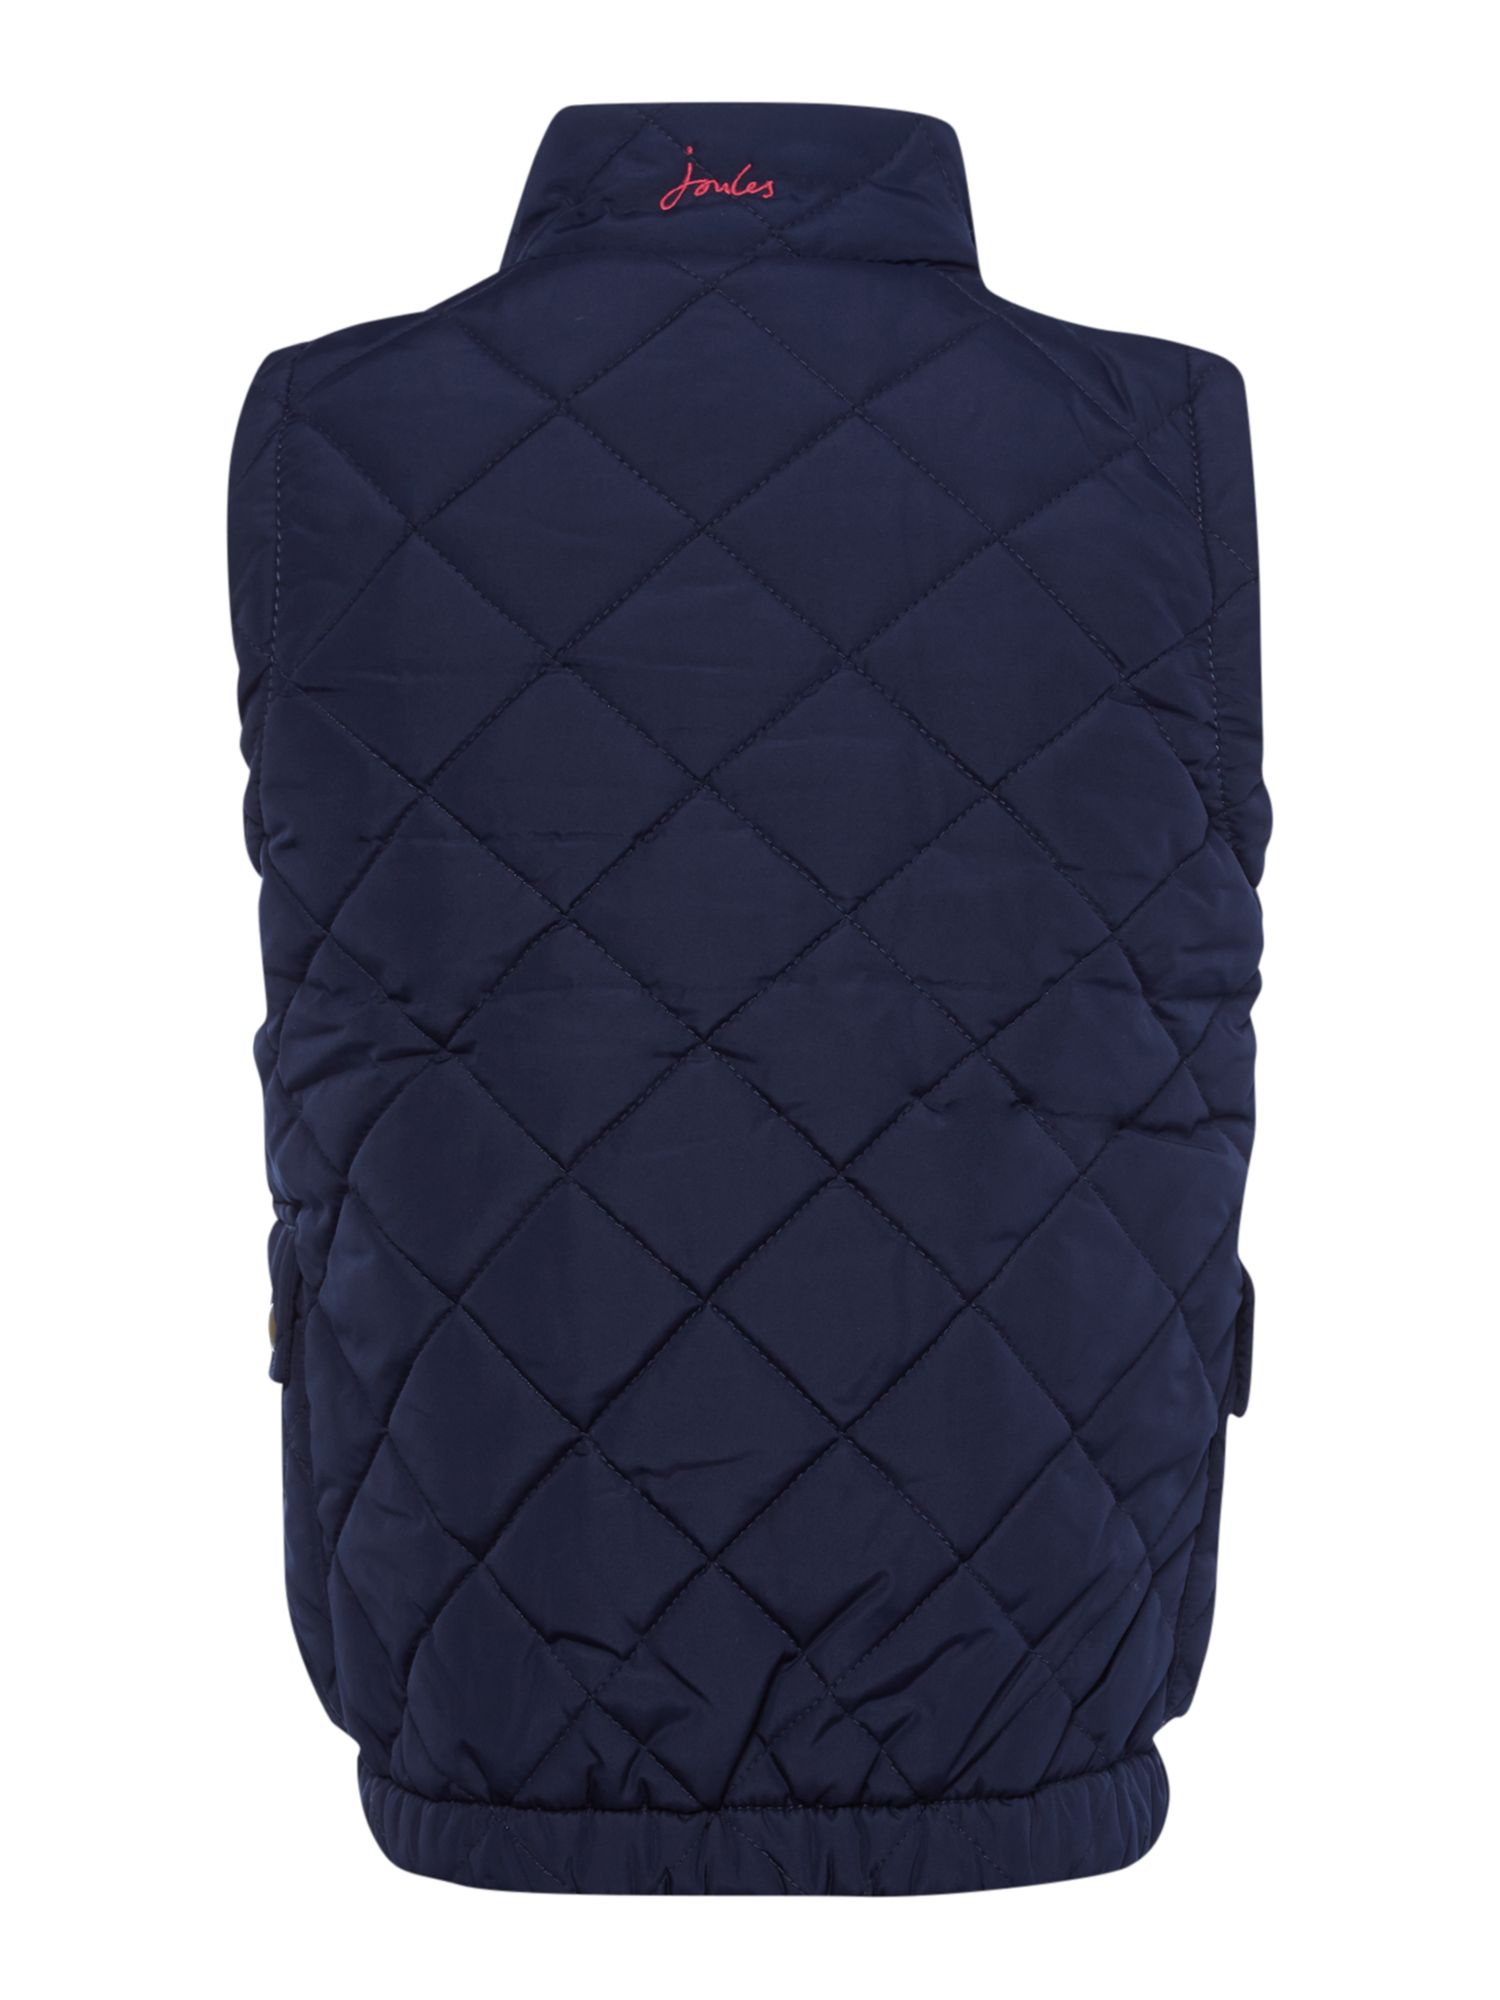 Girls quilted gilet with floral lining